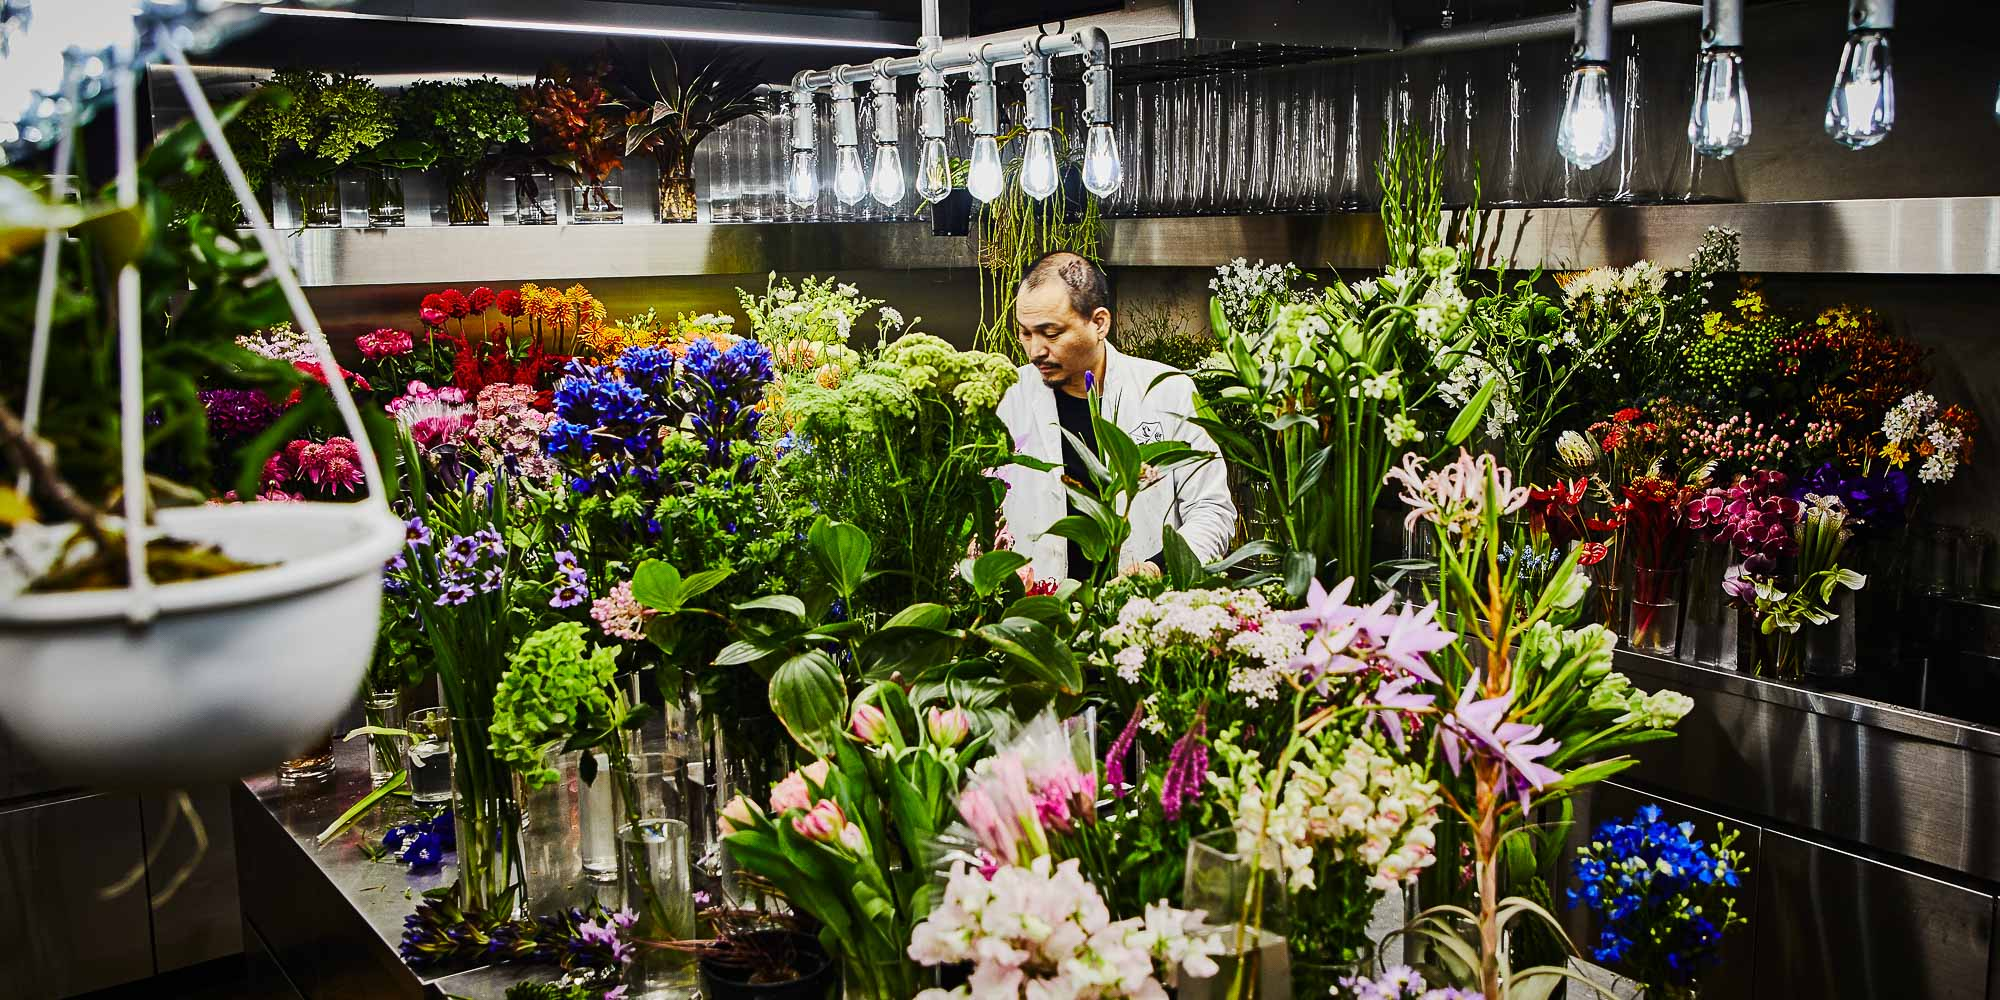 Makoto Azuma floral artist working in his workshop